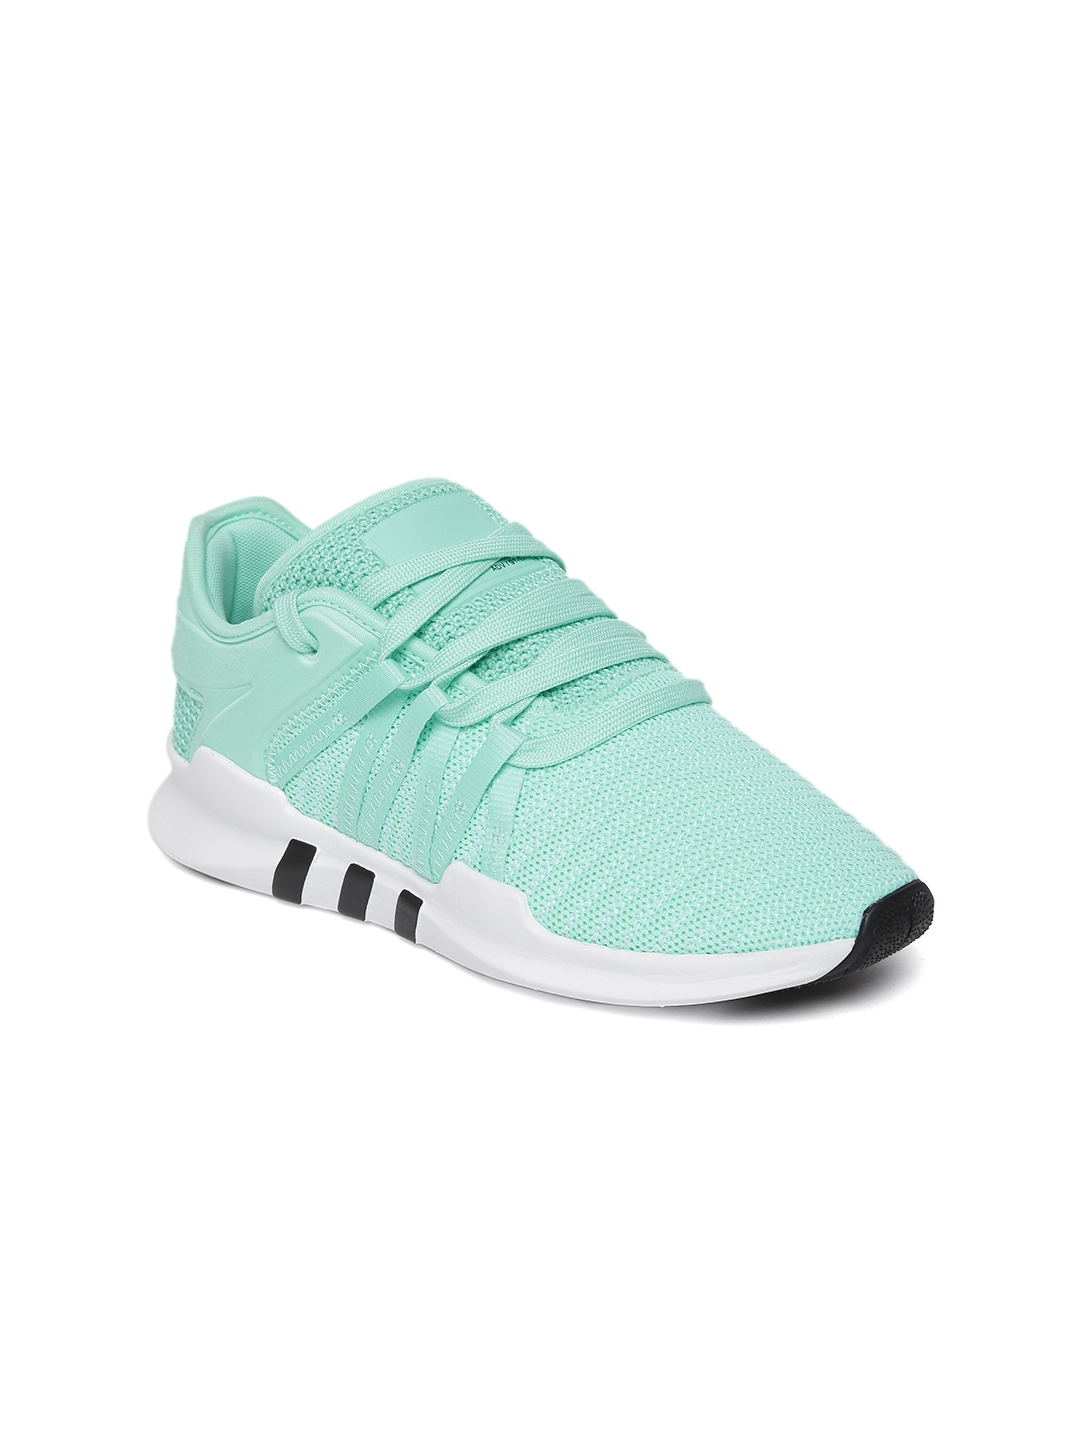 new arrival 24f55 debb5 ADIDAS Originals Women Green EQT Racing ADV Sneakers